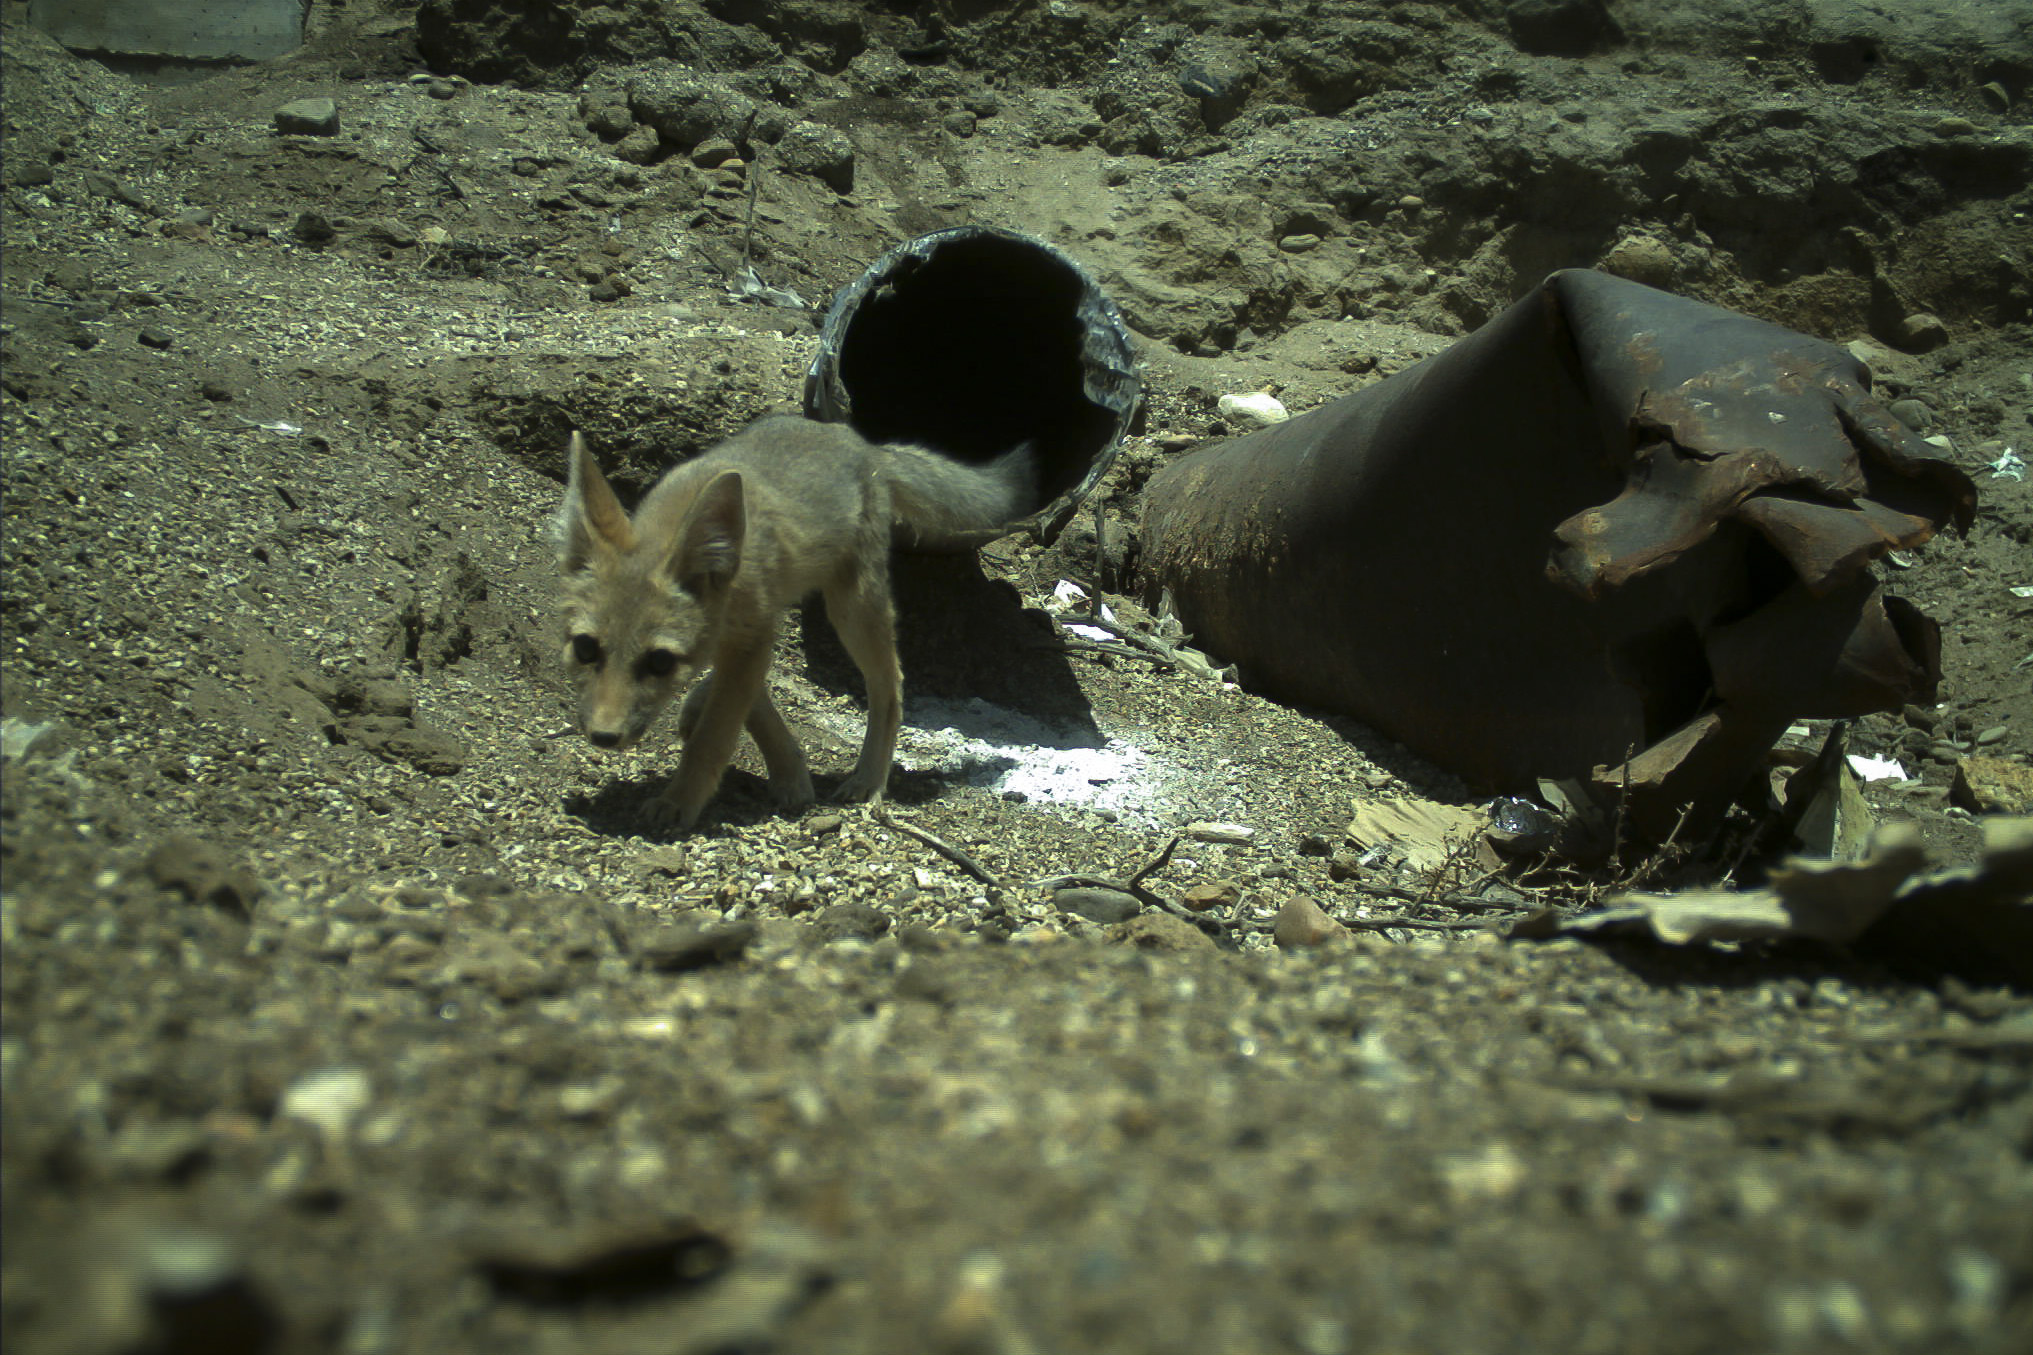 MBI has experience handling sensitive cases including den excavation involving kit fox.